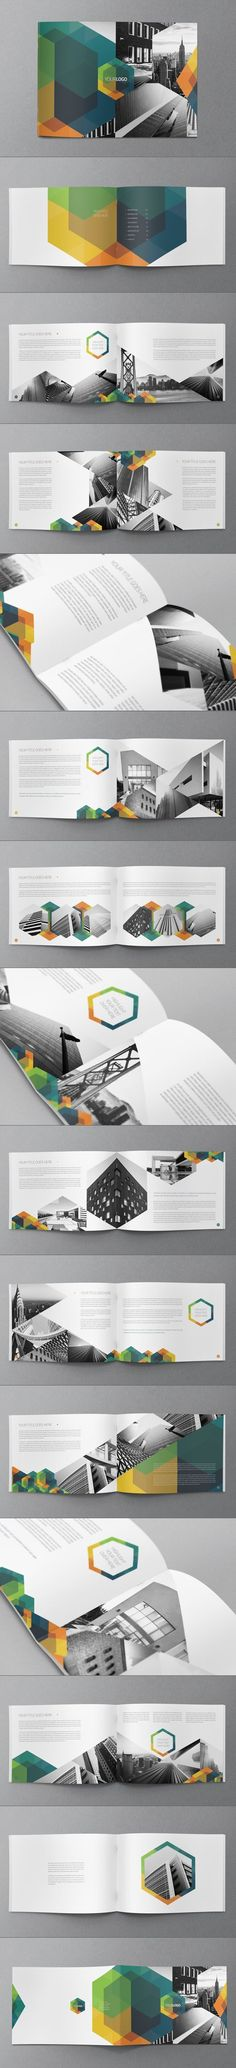 Creative Design, Brochure, Graphic, Layout, and Hexo image ideas & inspiration on Designspiration Layout Design, Graphisches Design, Buch Design, Print Layout, Graphic Design Layouts, Swiss Design, Print Design, Brochure Indesign, Design Brochure